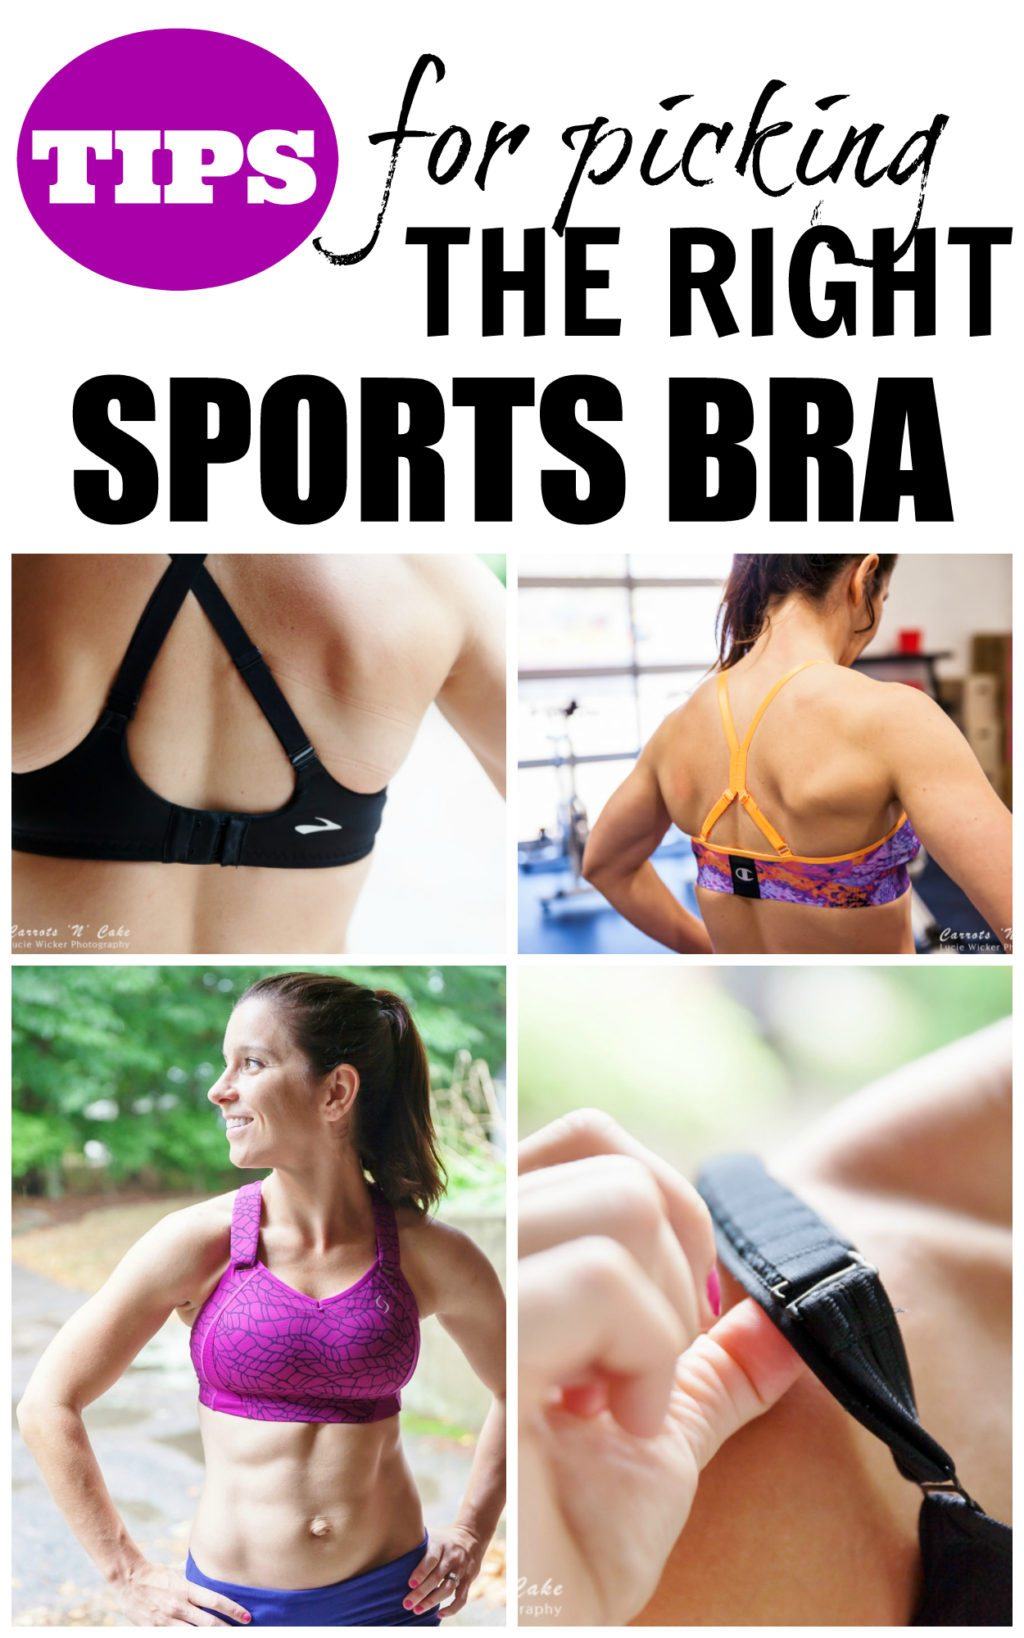 TIPS FOR PICKING THE RIGHT SPORTS BRA